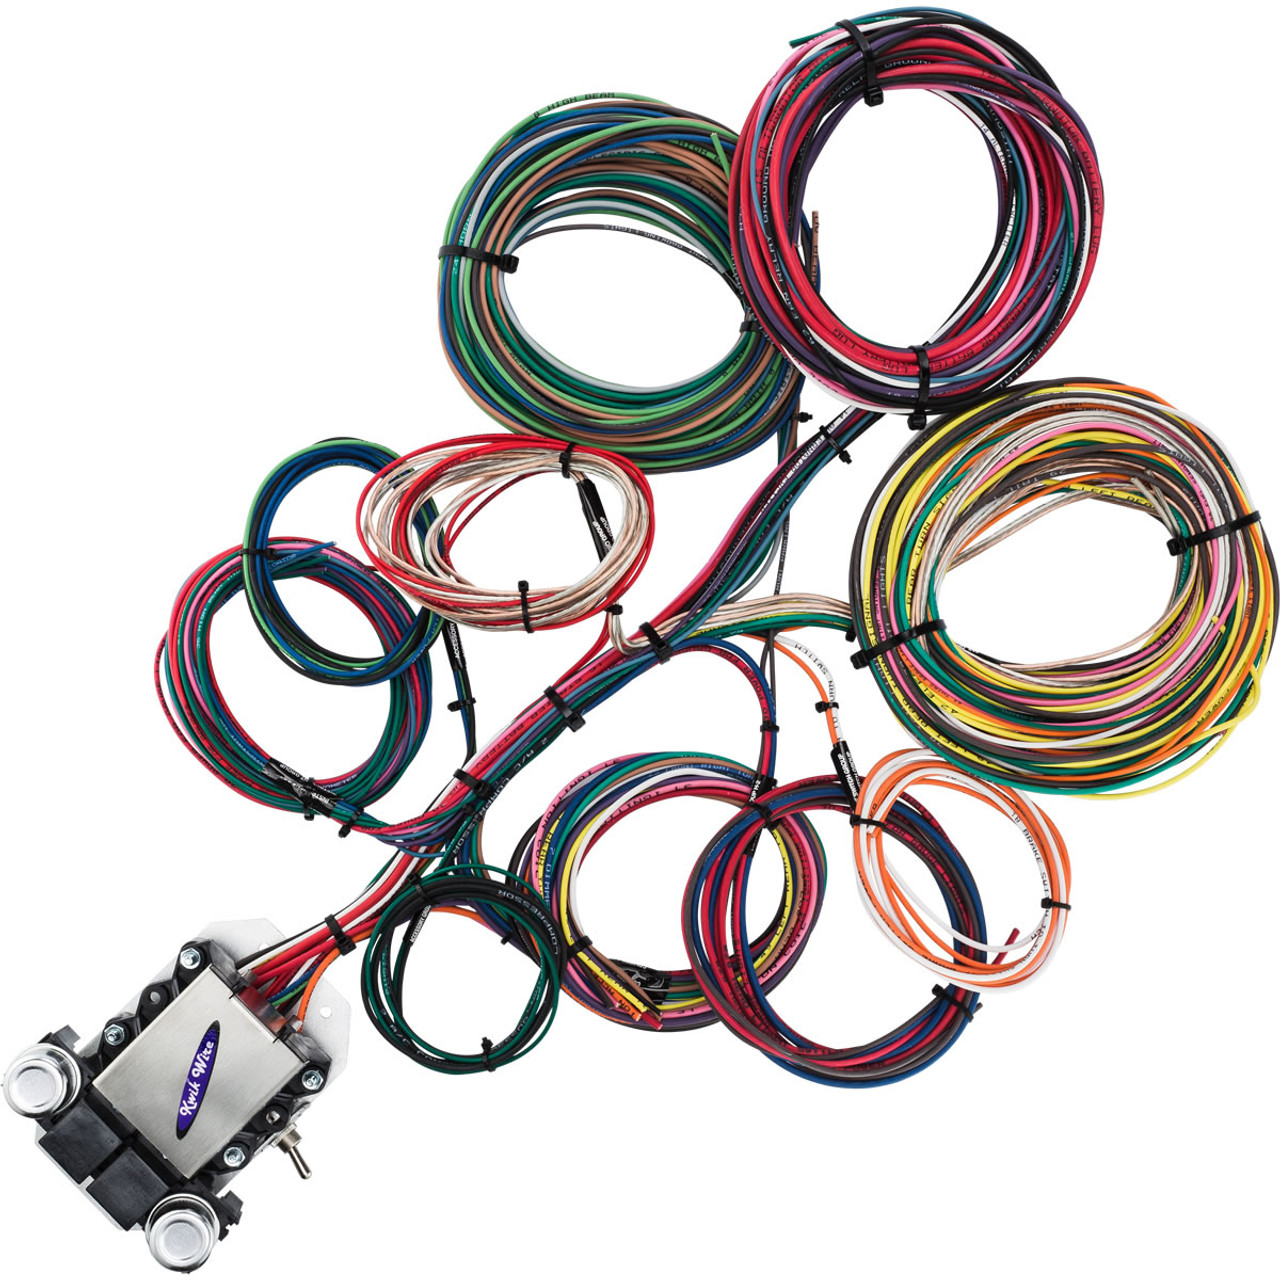 14 circuit ford wire harness kwikwire com electrify your ride rh kwikwire com ford wiring harness color codes ford wiring harness recall